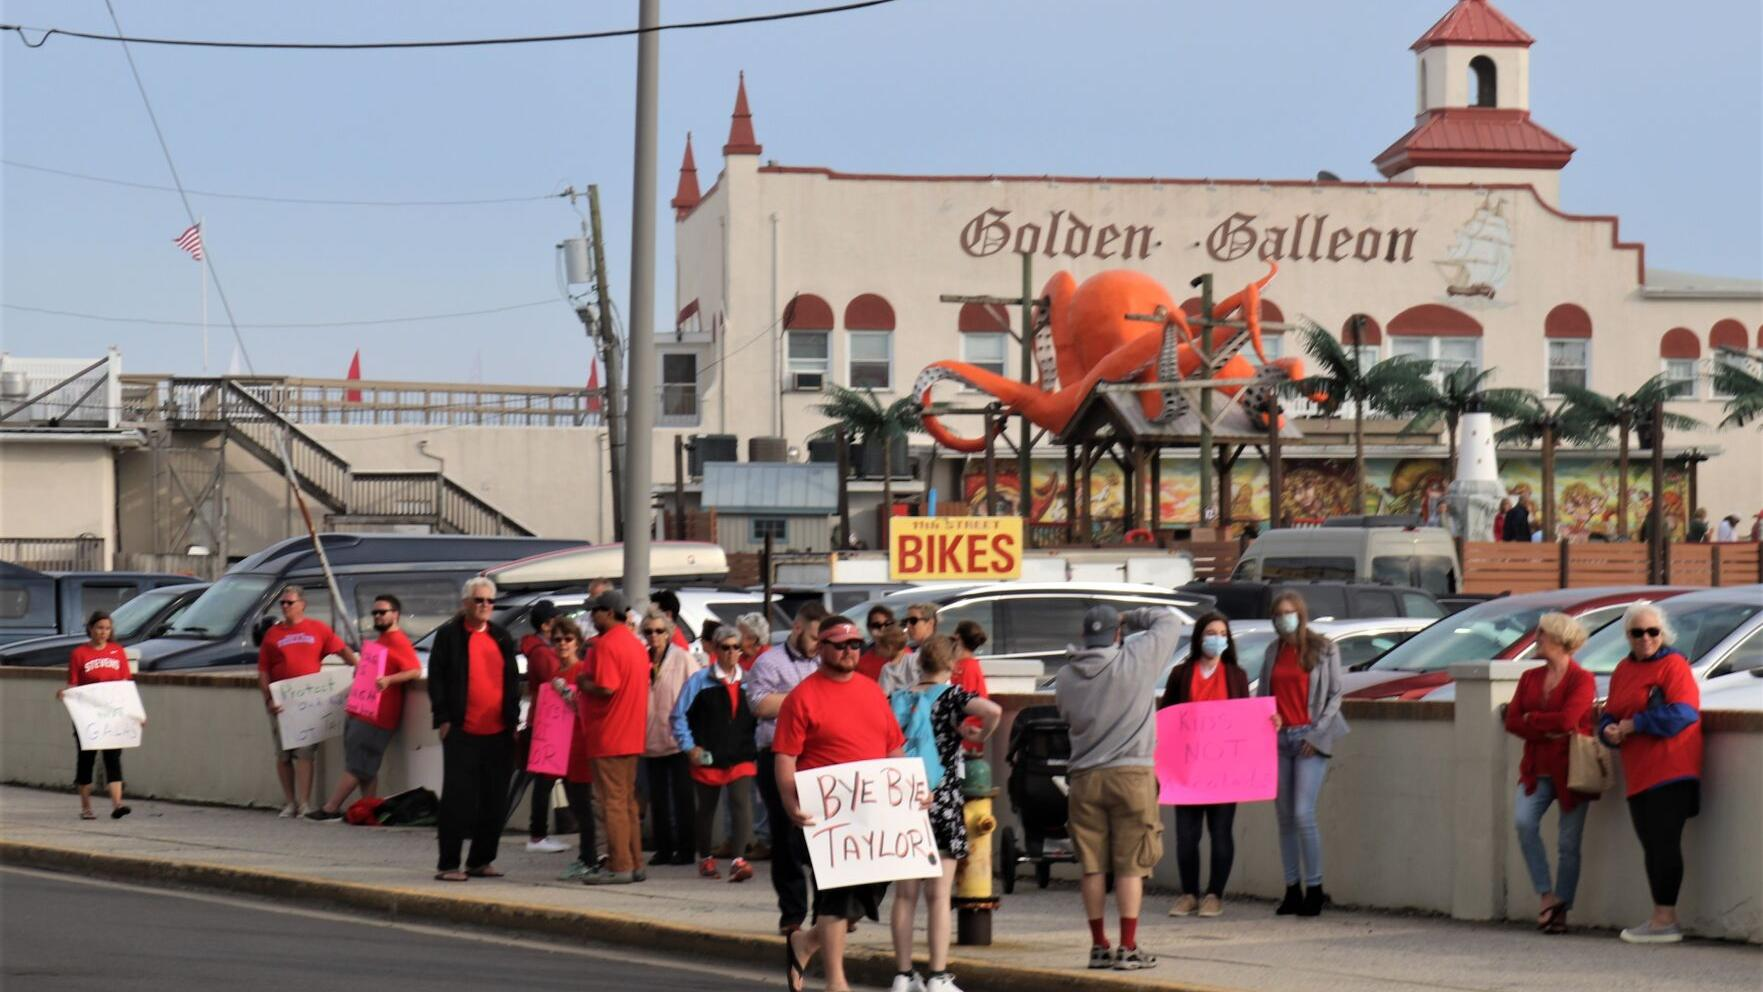 As Ocean City celebrates outgoing superintendent, protesters have their say